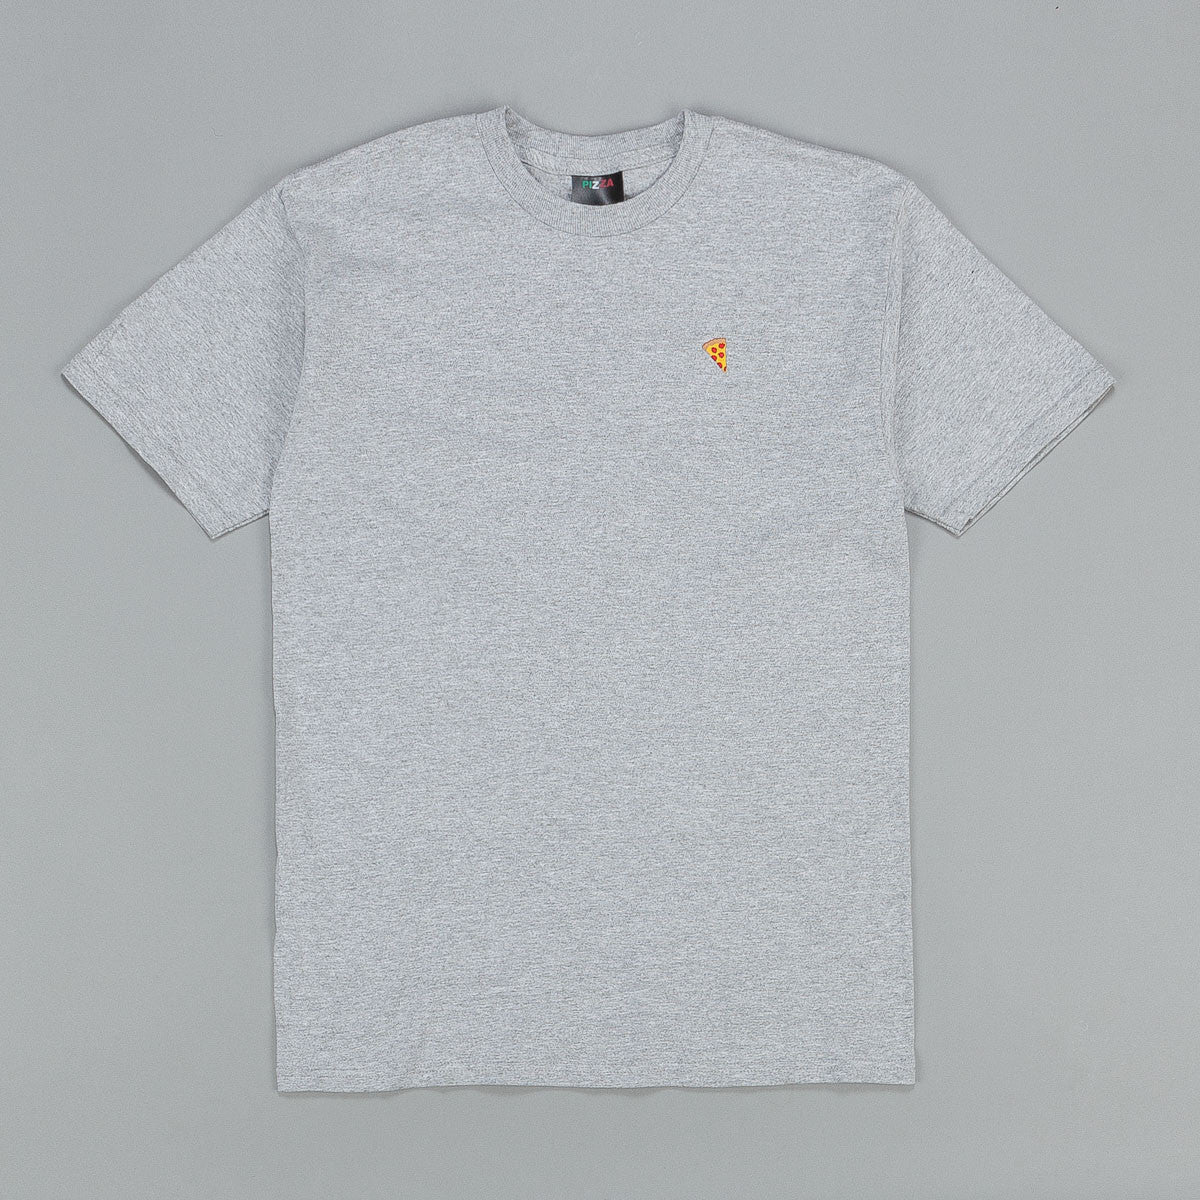 Pizza Skateboards Emoji T-Shirt - Ash Grey